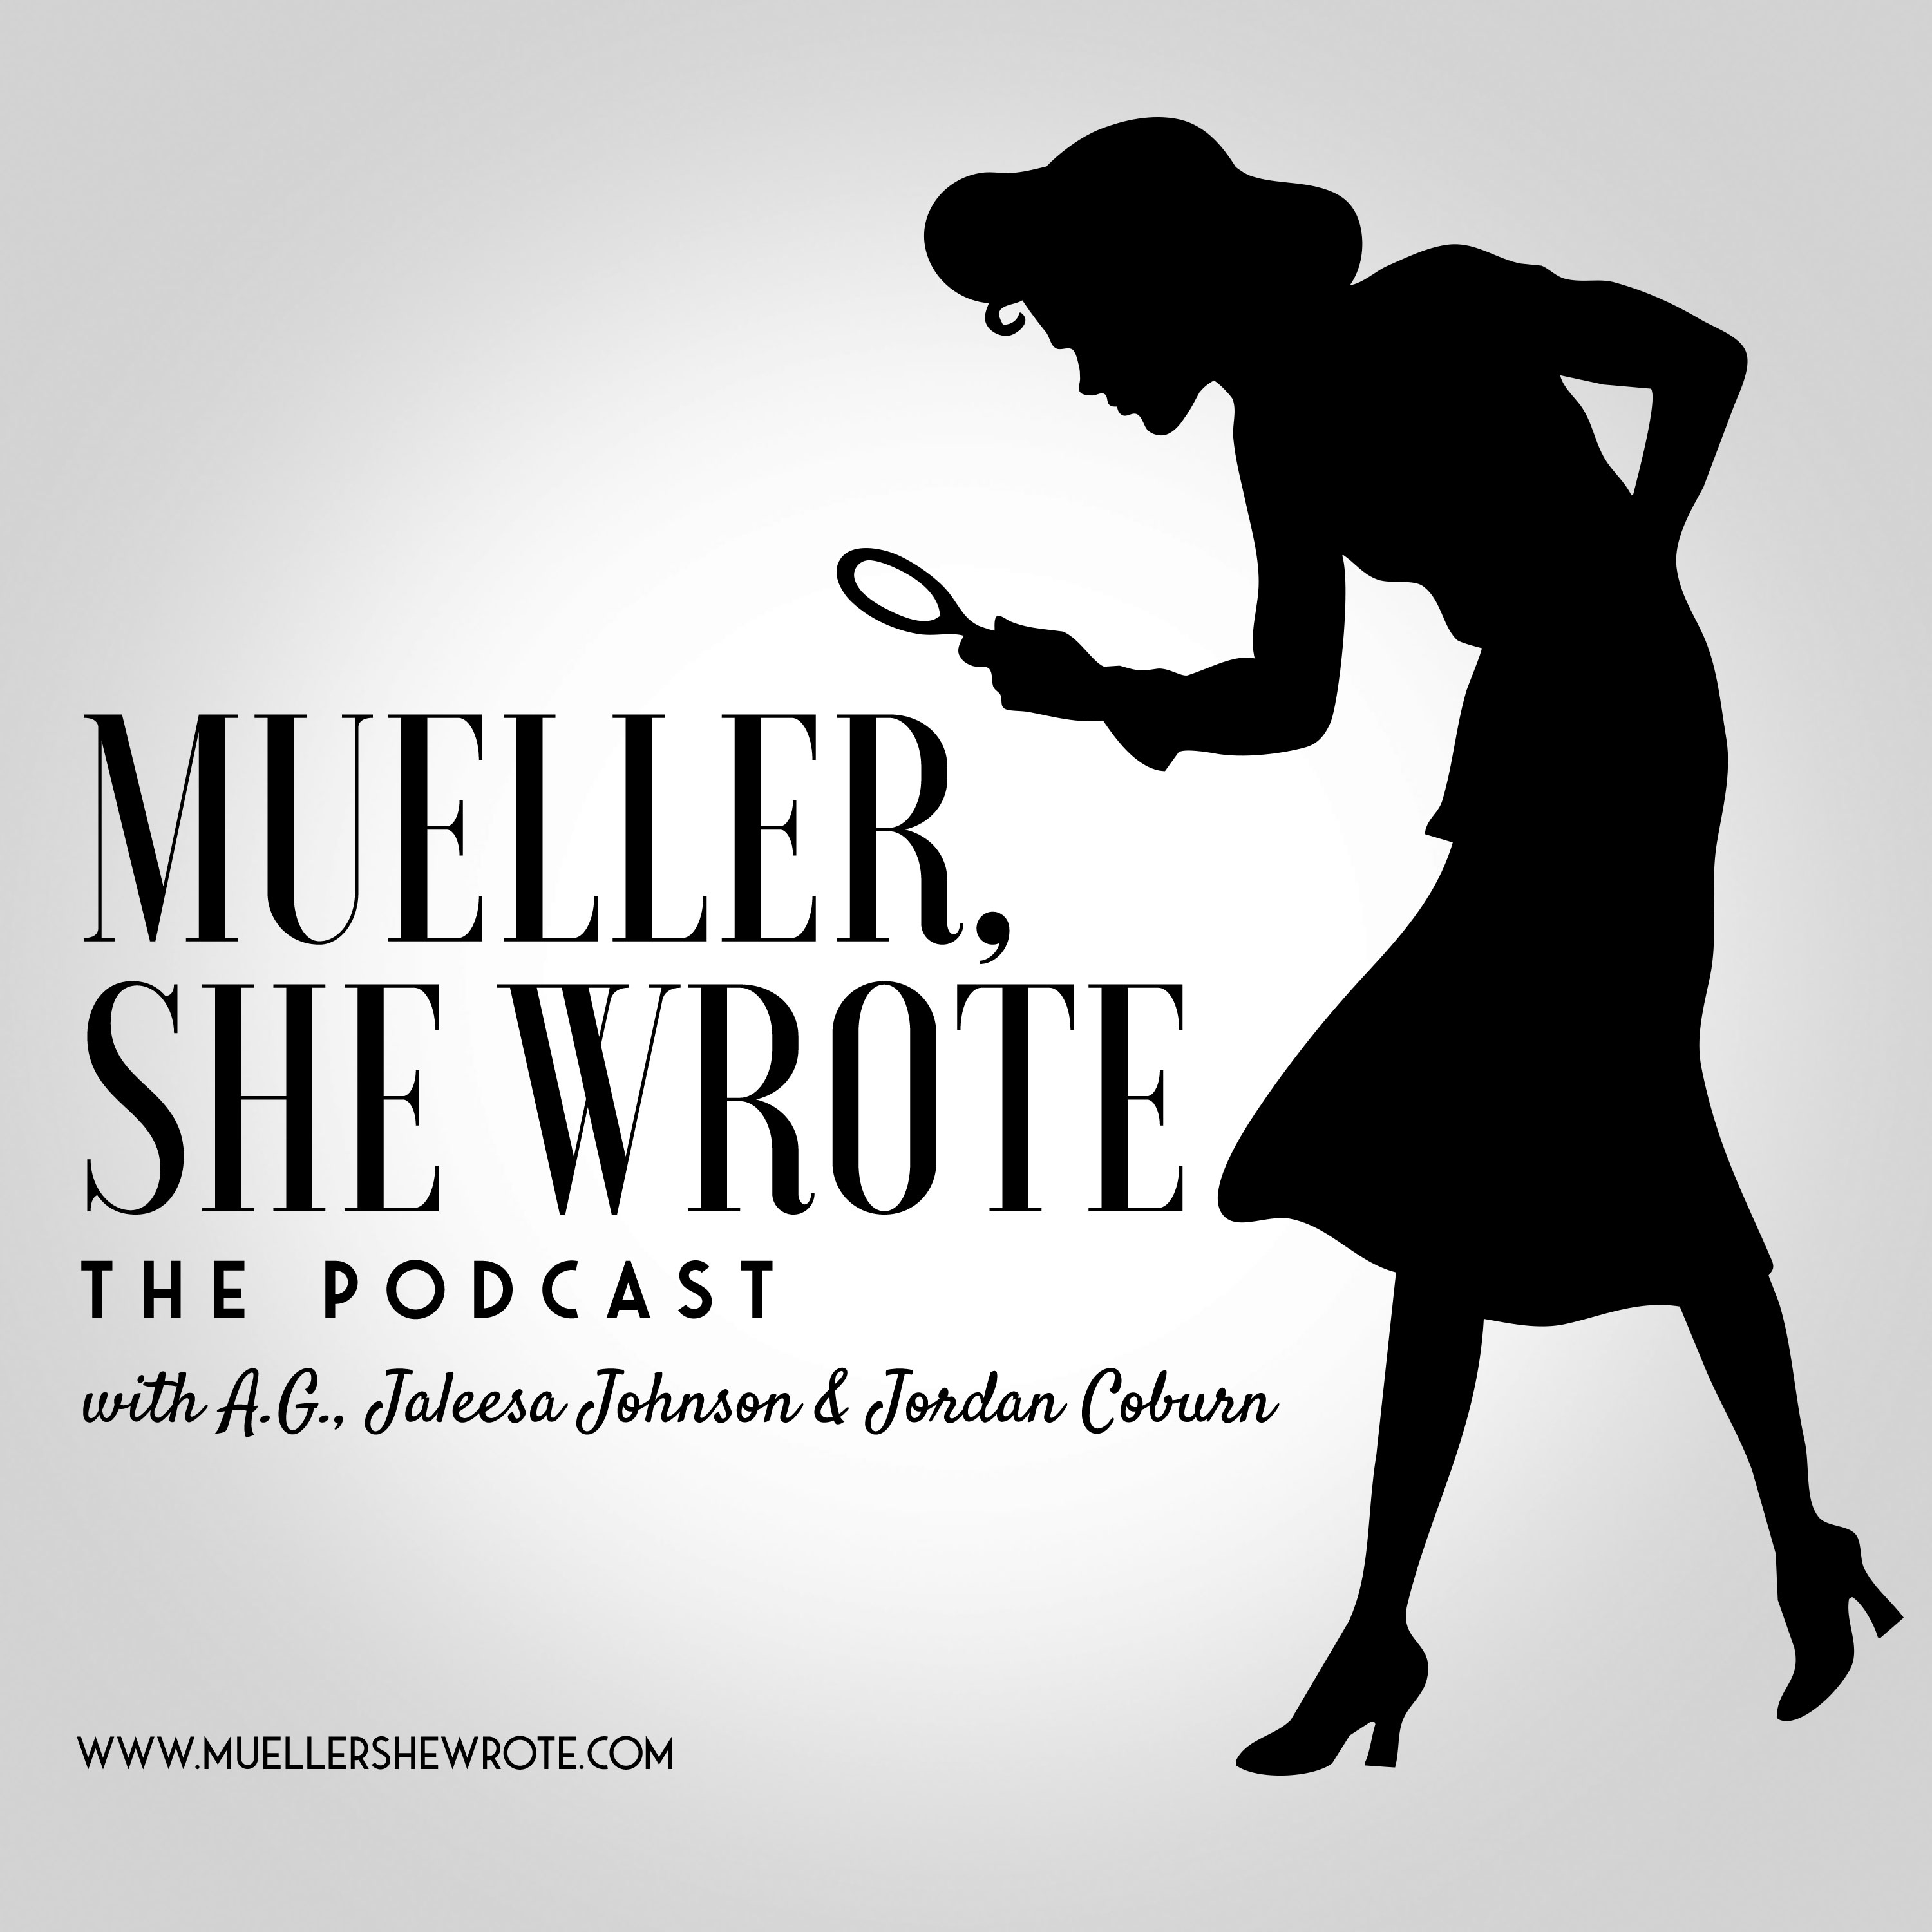 Mueller, She Wrote & The Daily Beans - A Podcast Unraveling the